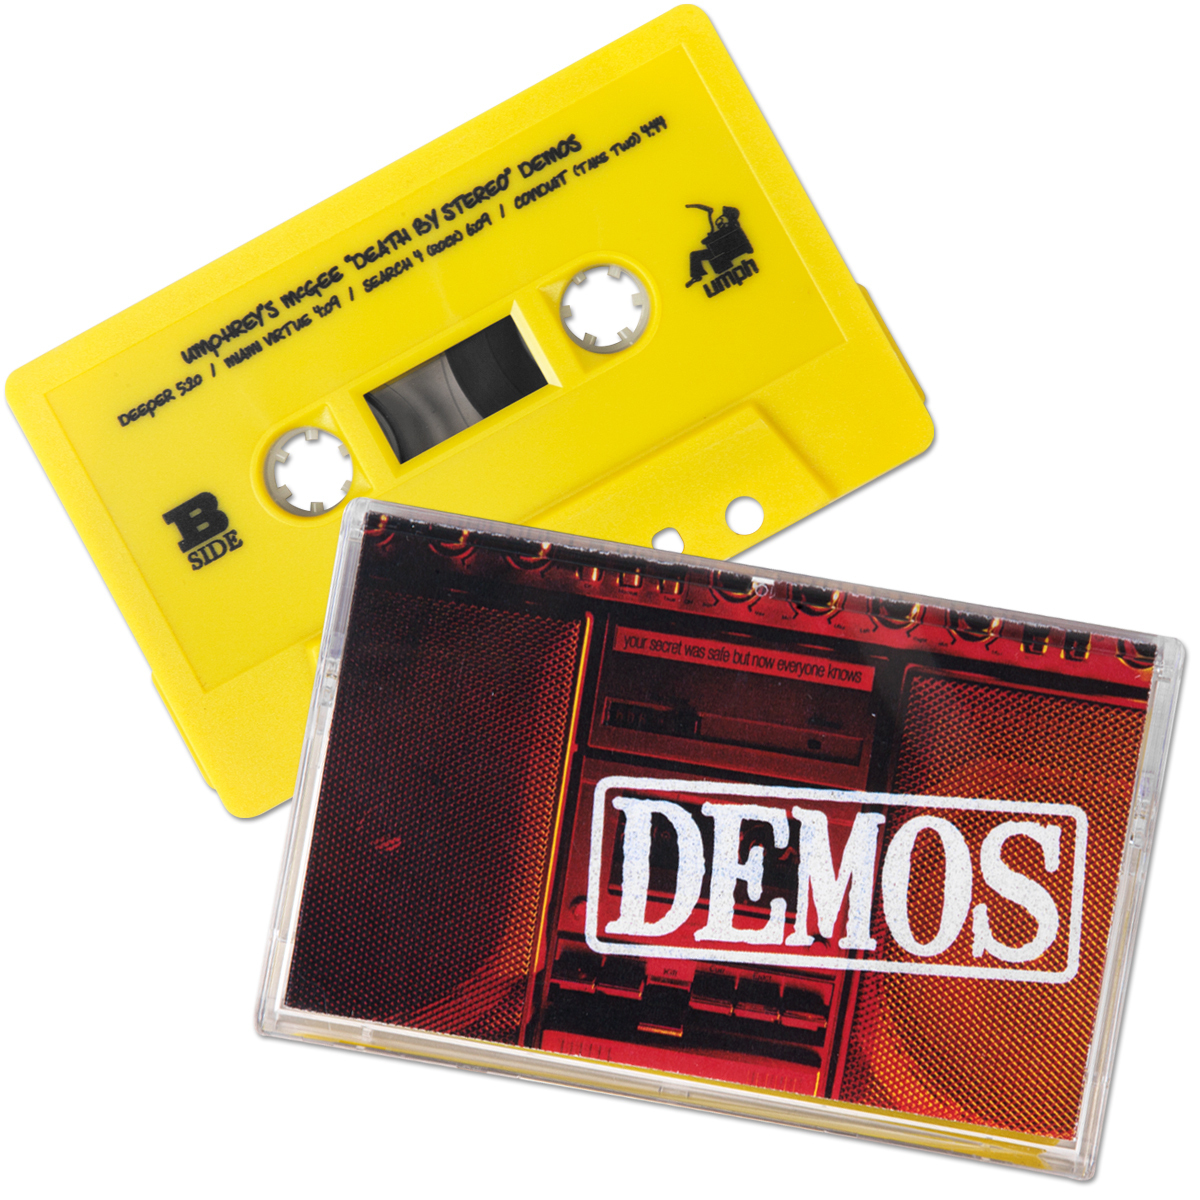 Umphrey's McGee - Death By Stereo Demos Cassette Tape